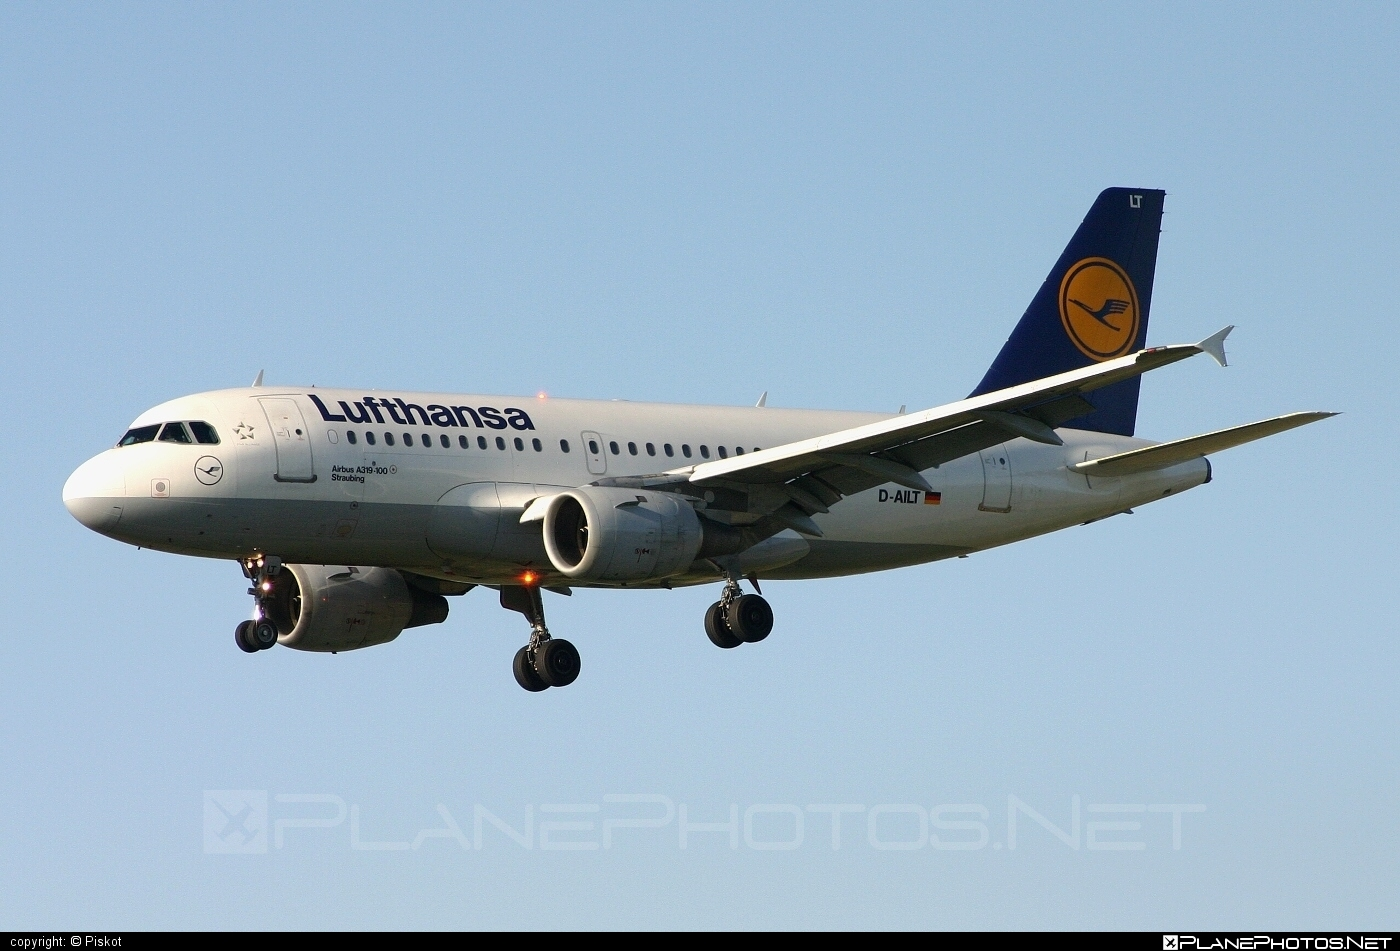 Airbus A319-114 - D-AILT operated by Lufthansa #a319 #a320family #airbus #airbus319 #lufthansa